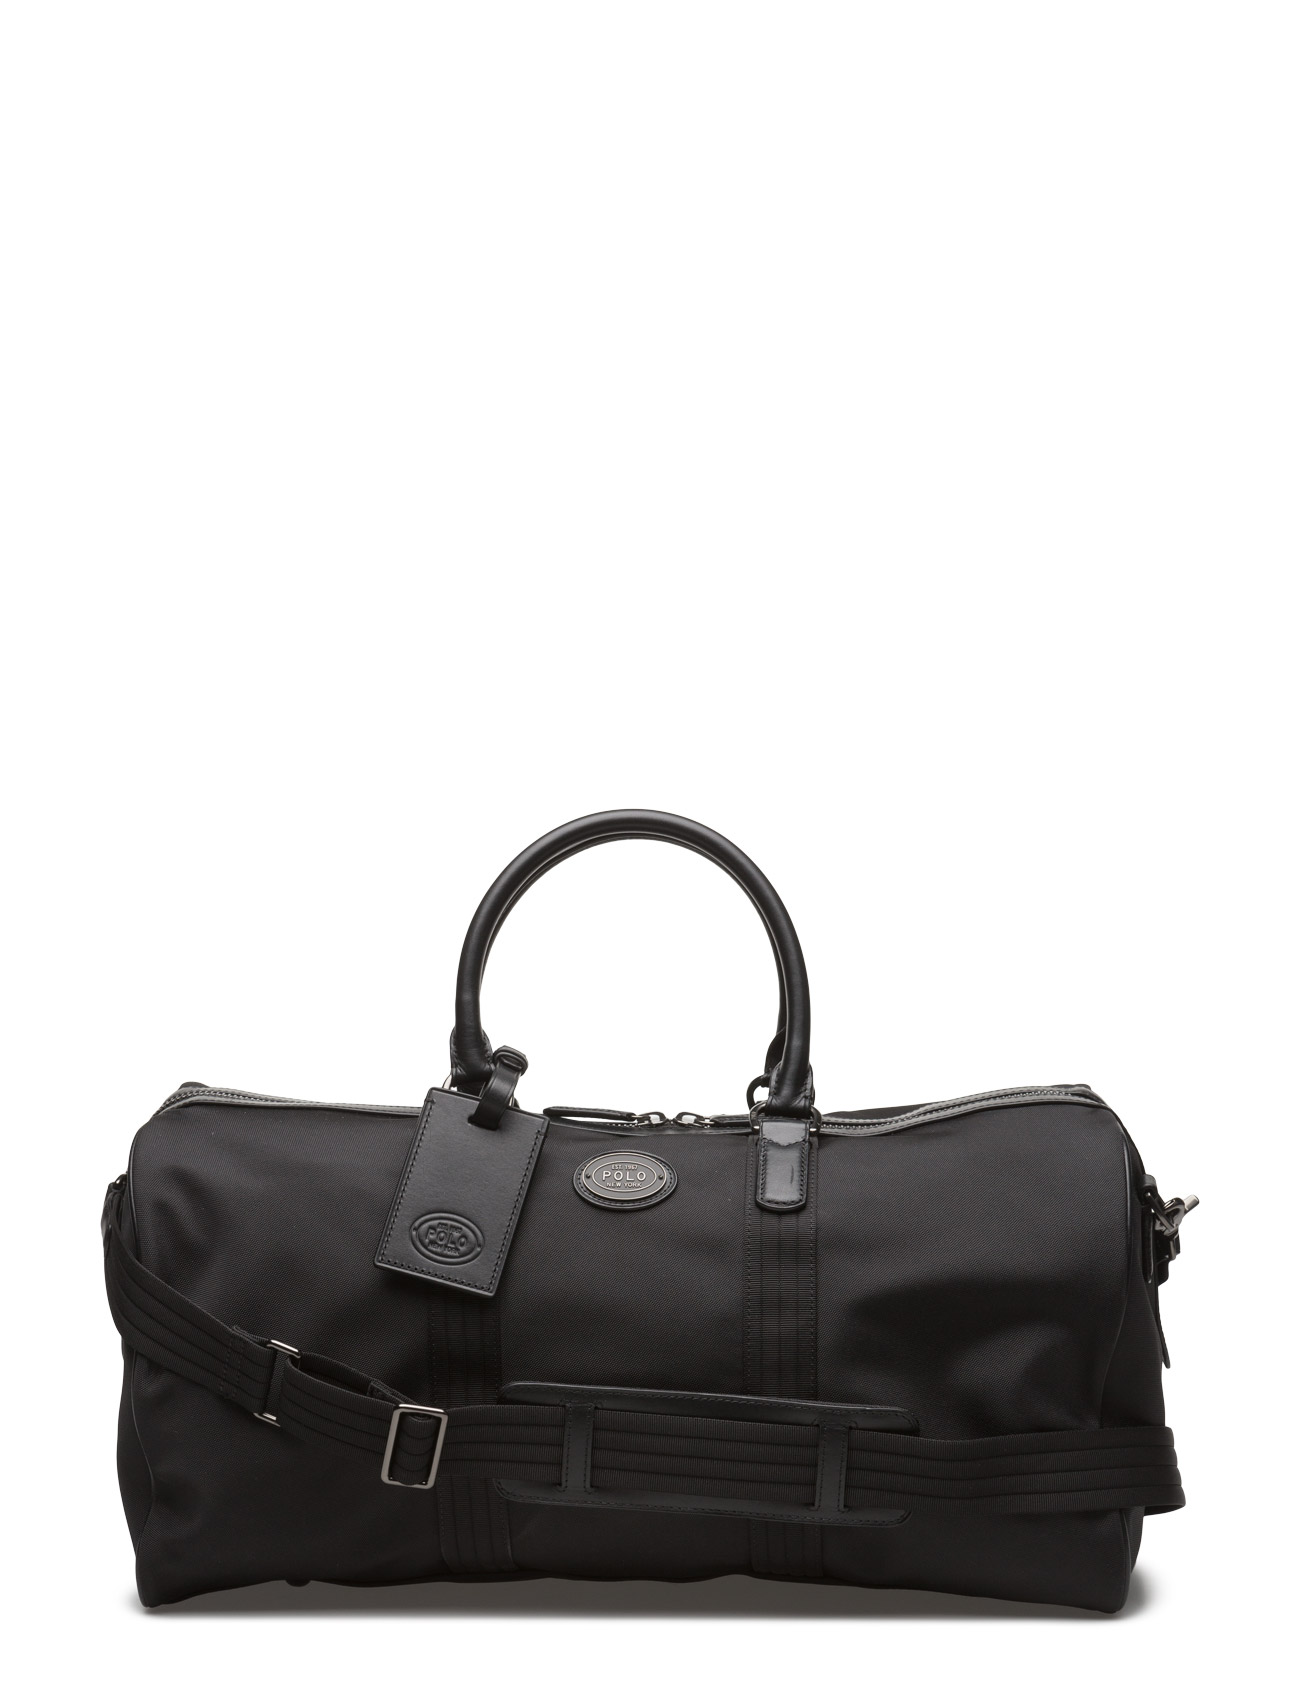 Polo Ralph Lauren Thompson Duffel Bag